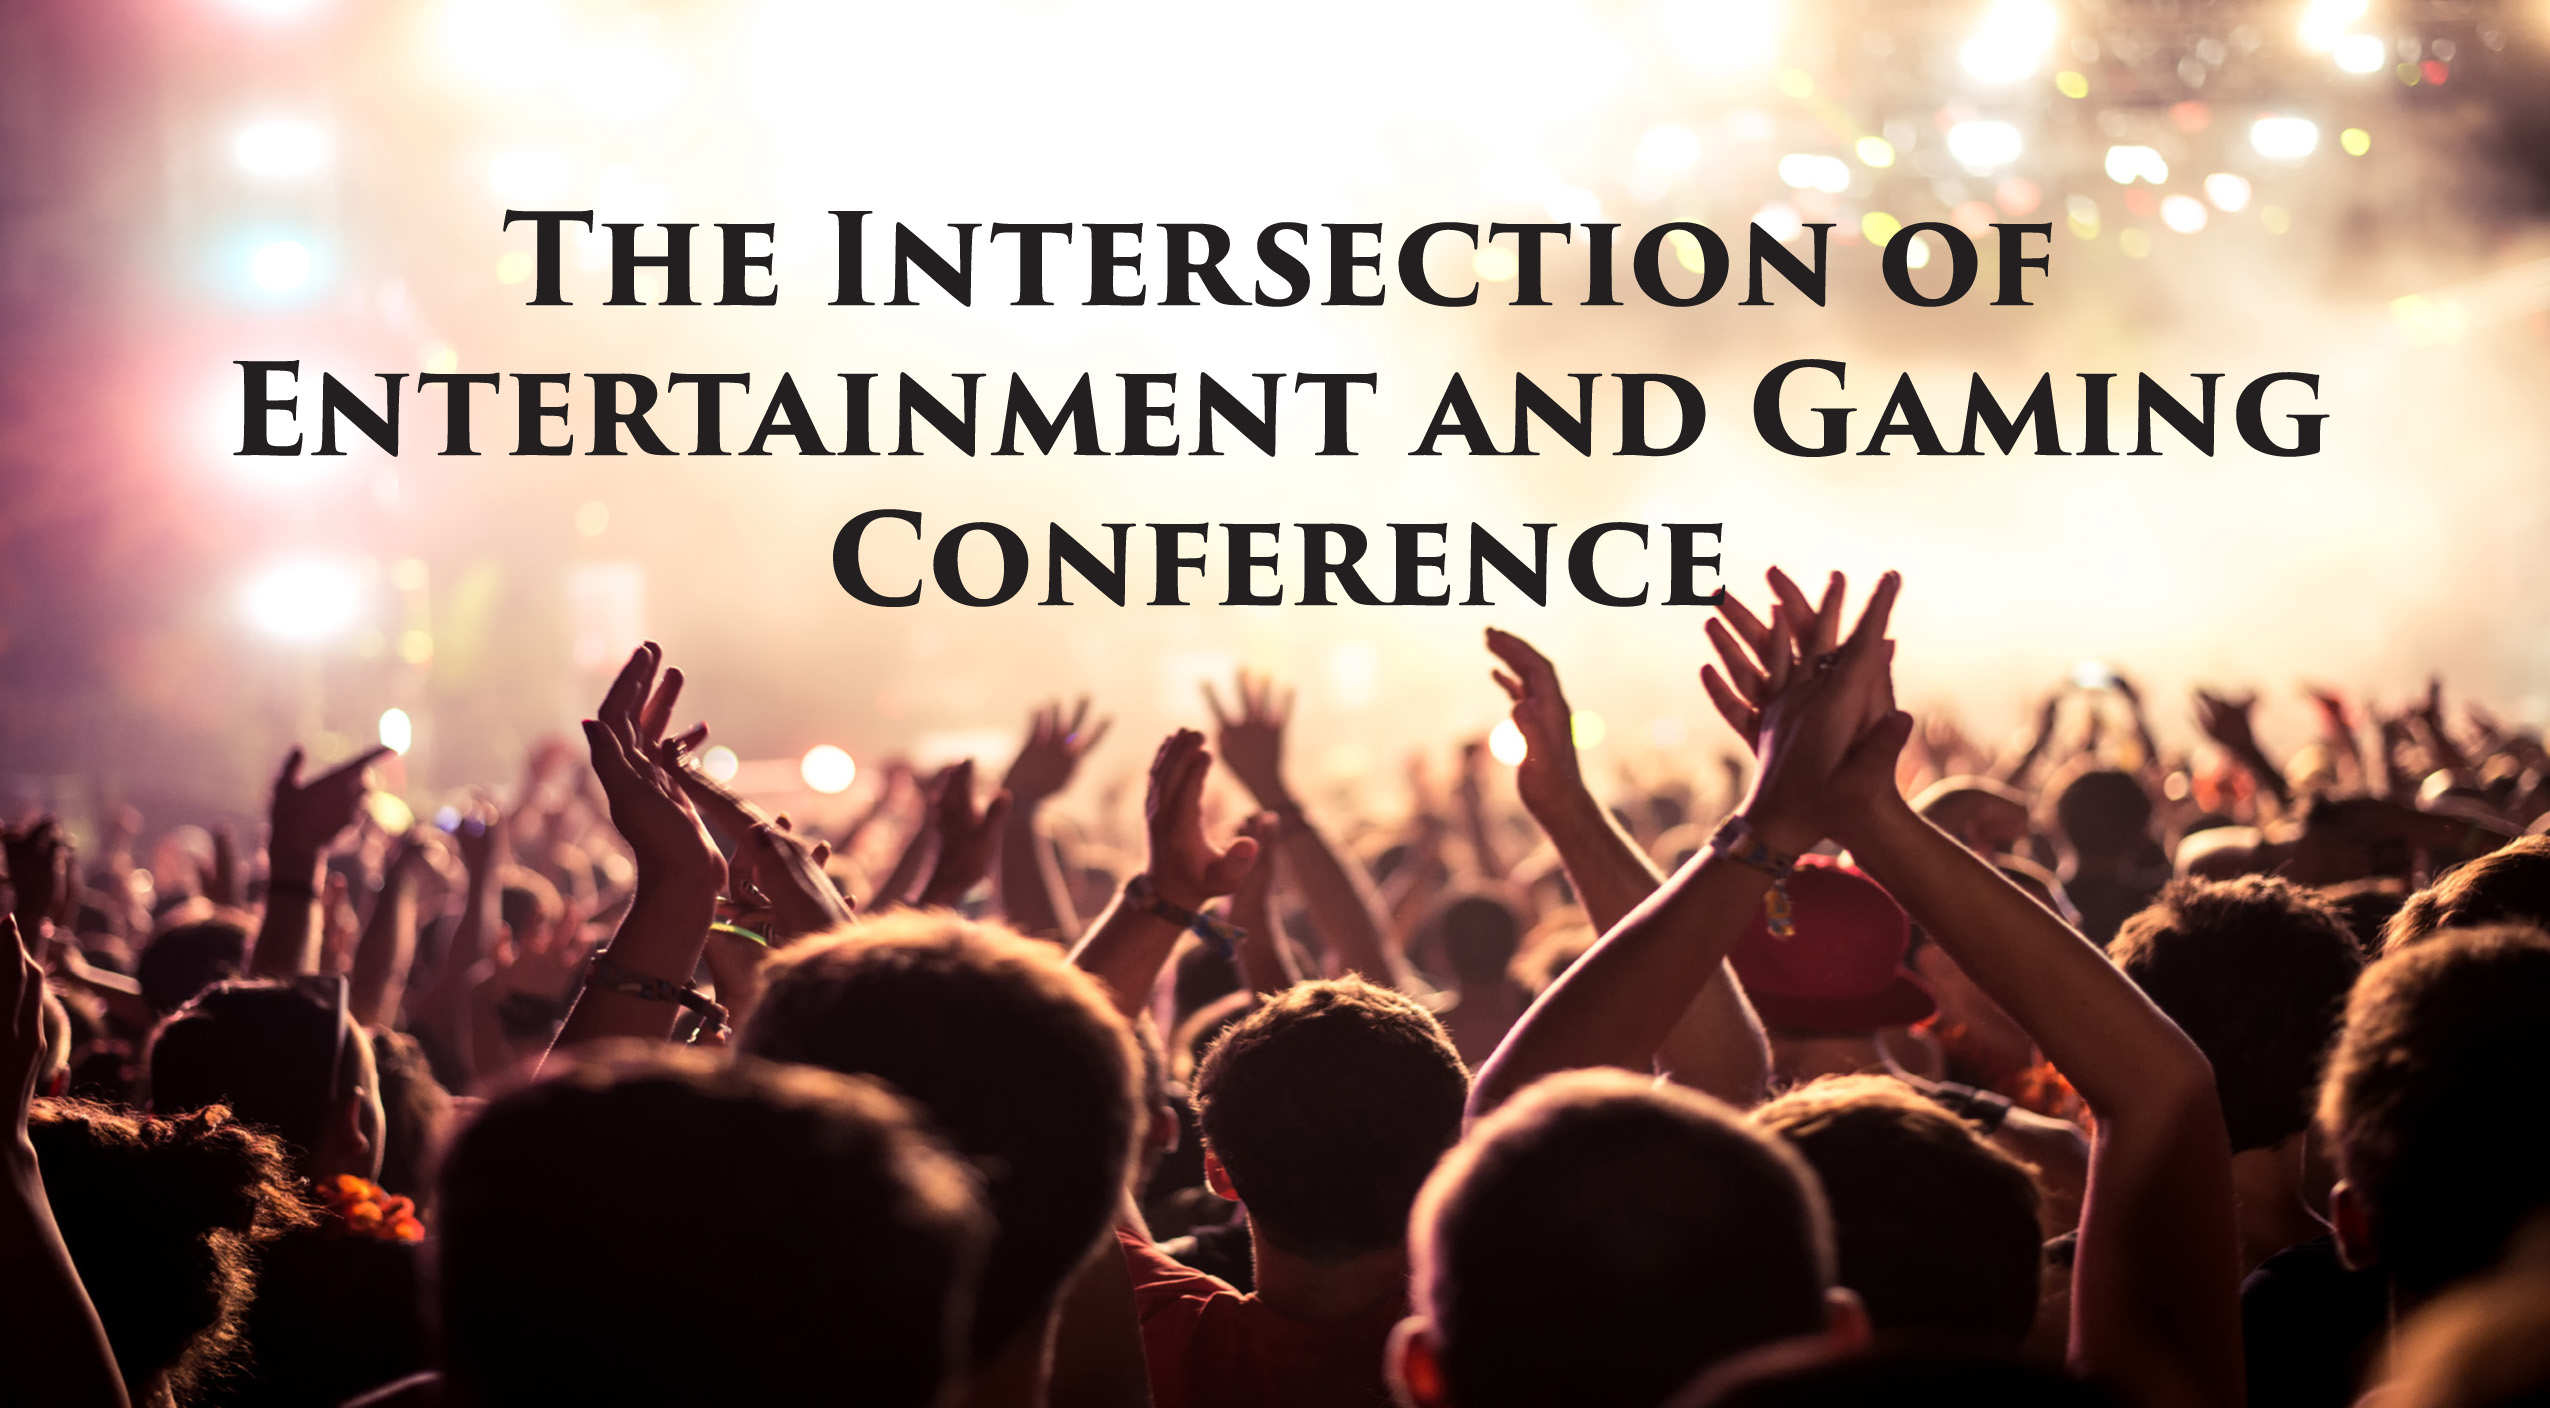 AIMP : Events - The Intersection of Entertainment and Gaming